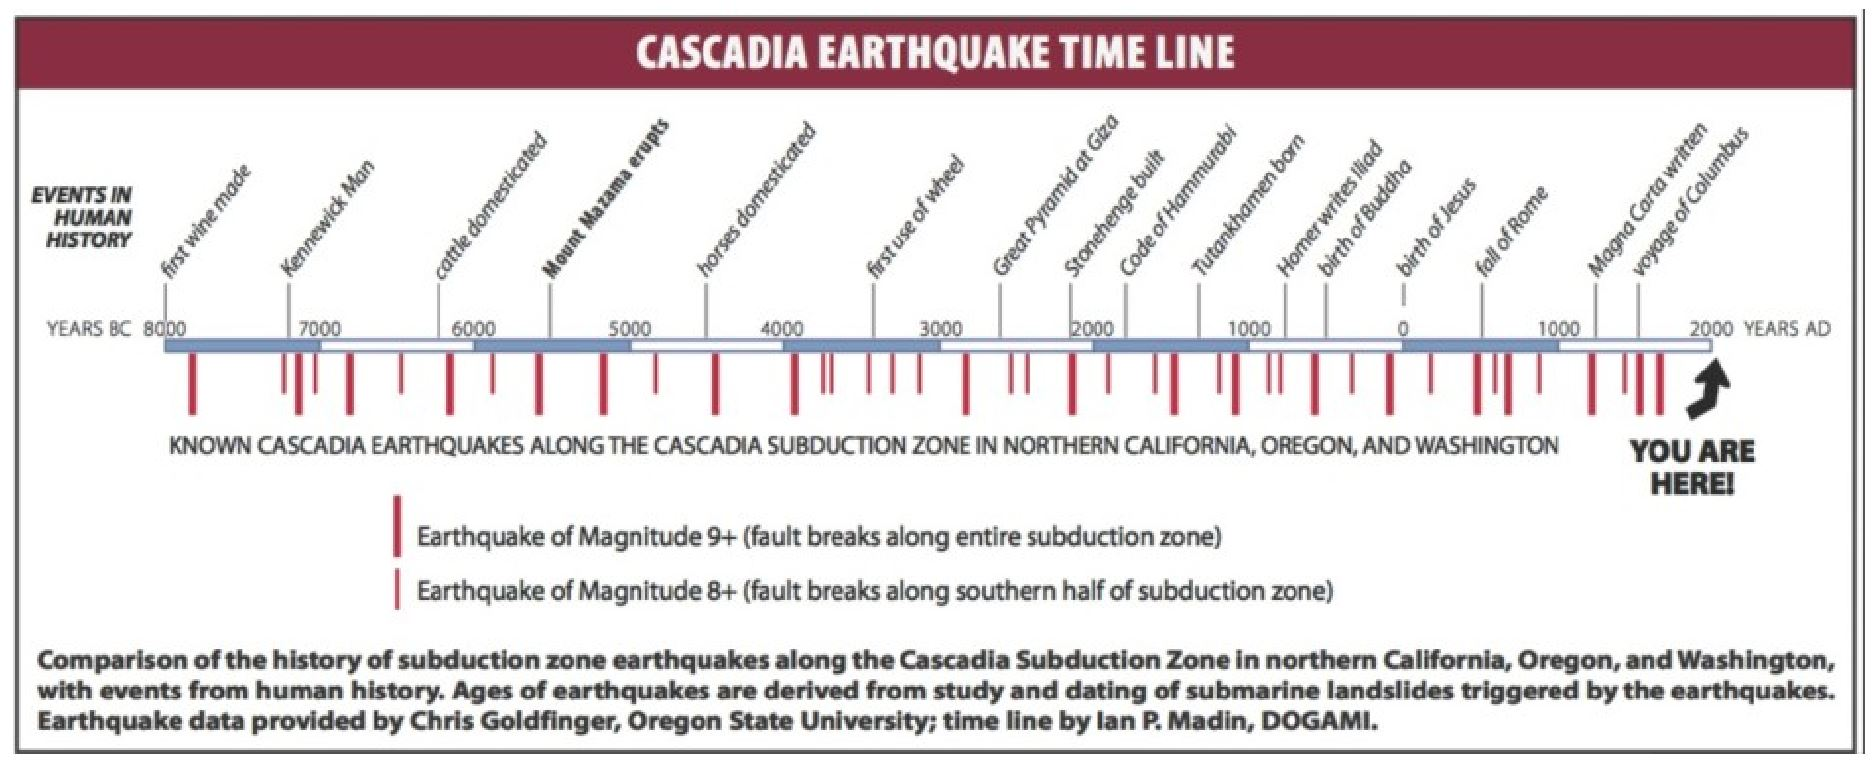 CHART SHOWING TIME LINE OF THE HISTORY OF LARGE EARTHQUAKES ALONG THE CASCADIA FAULT